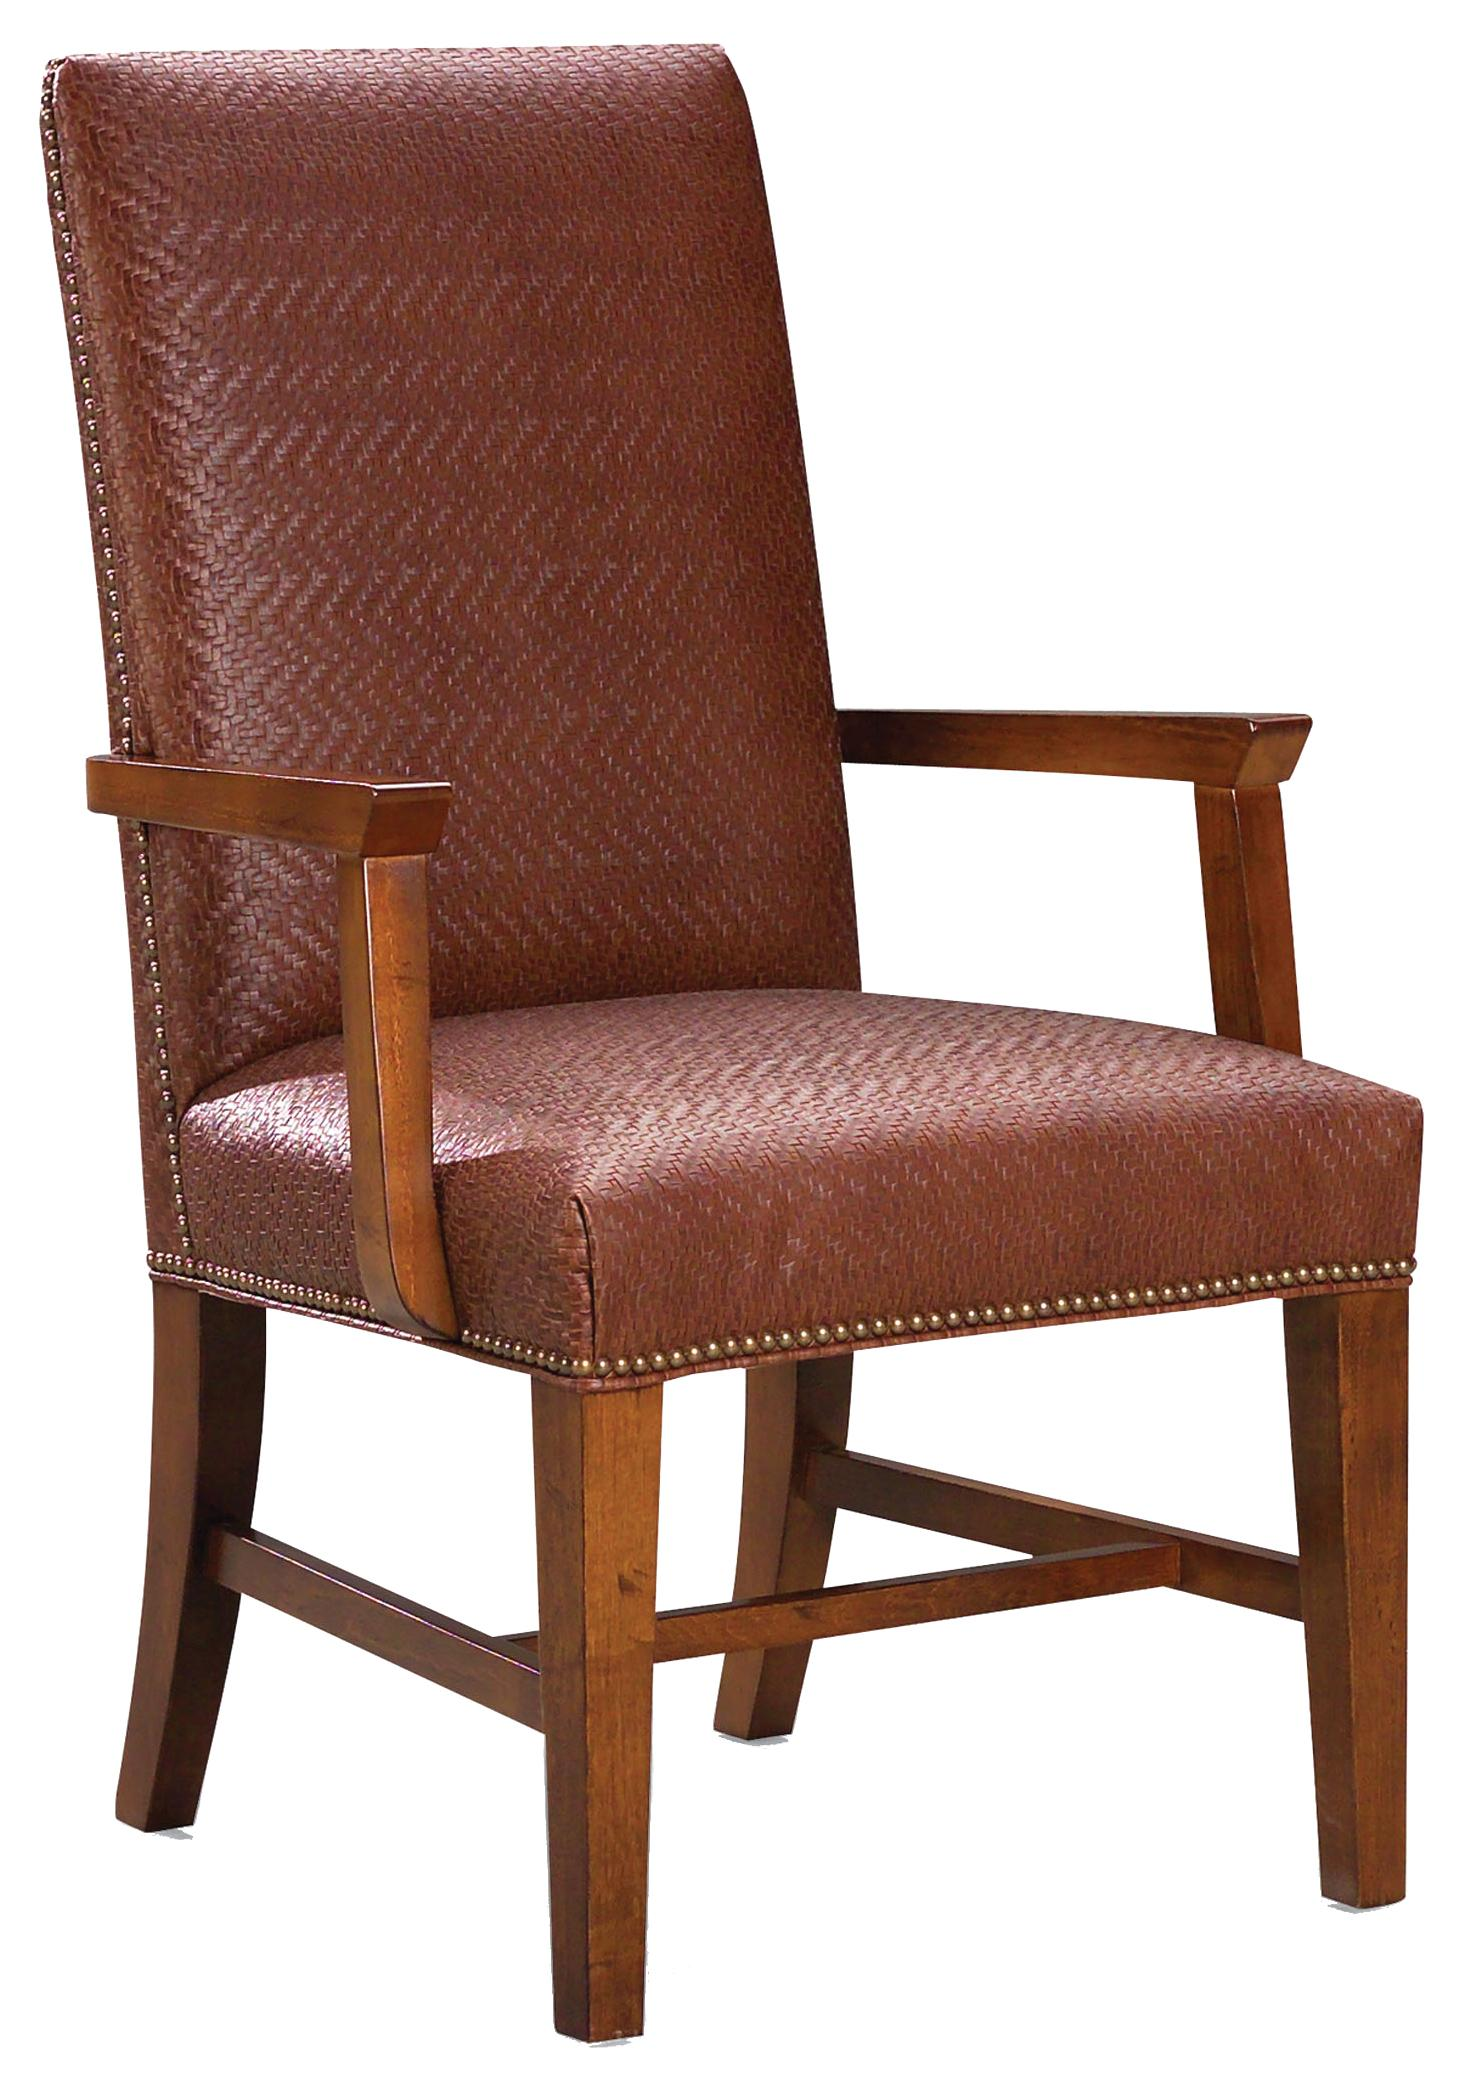 1011  Arm Chair by Fairfield at Stuckey Furniture